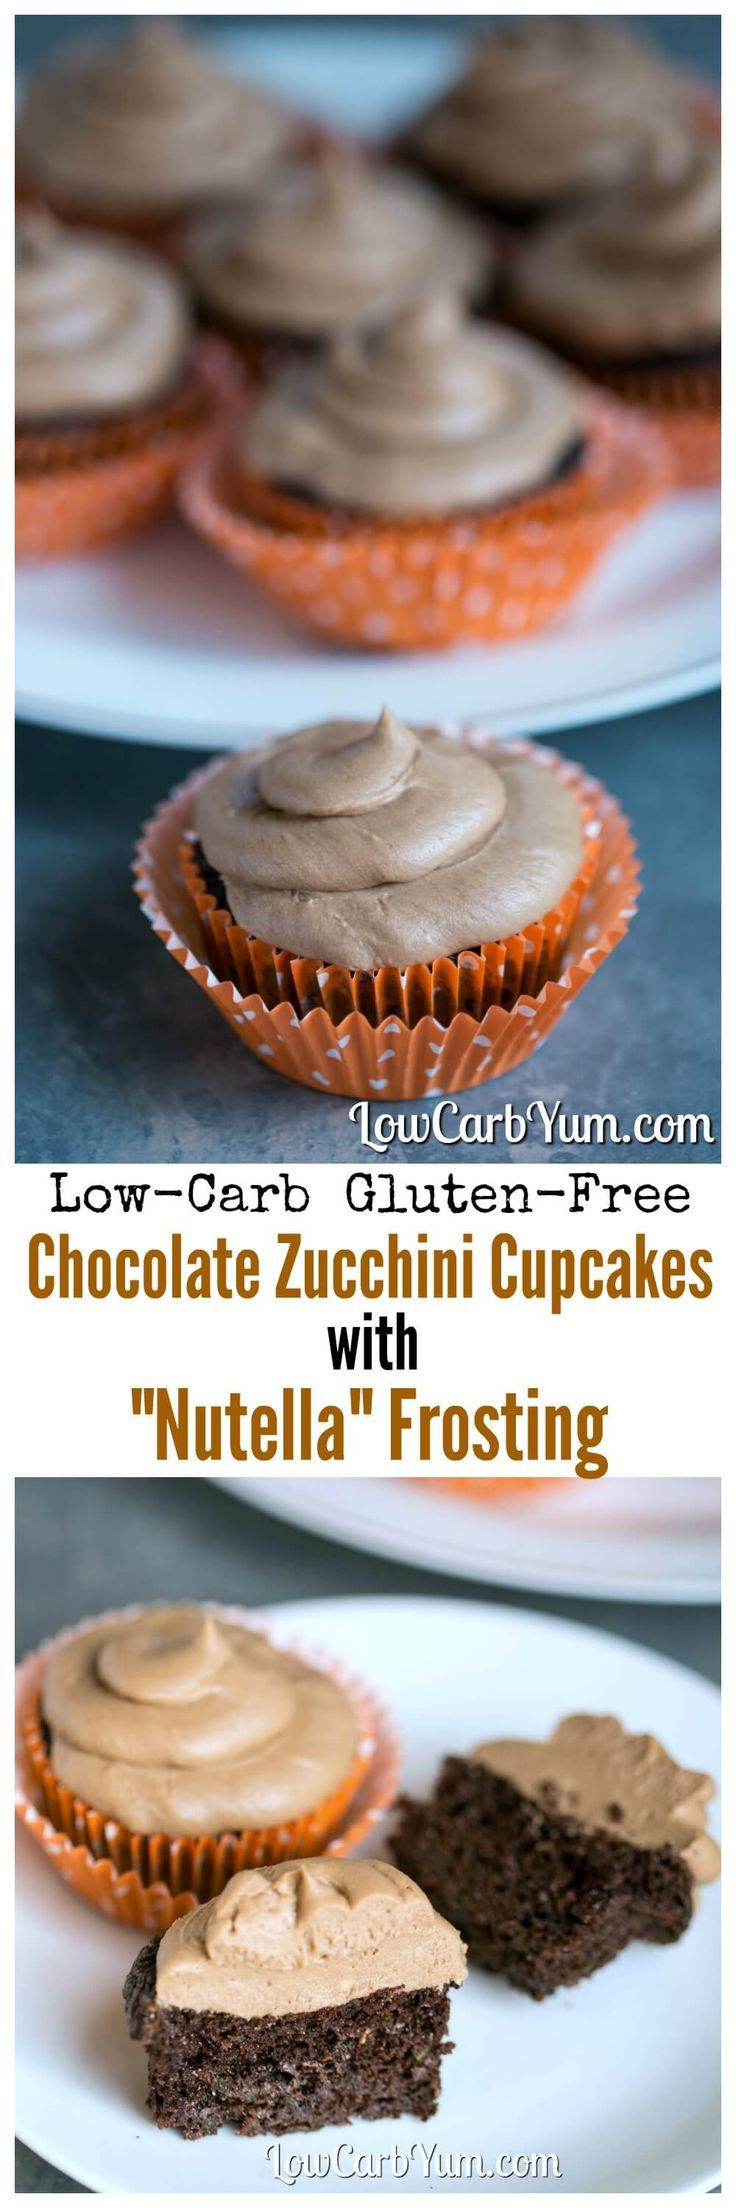 Deliciously moist low carb gluten free chocolate cupcakes